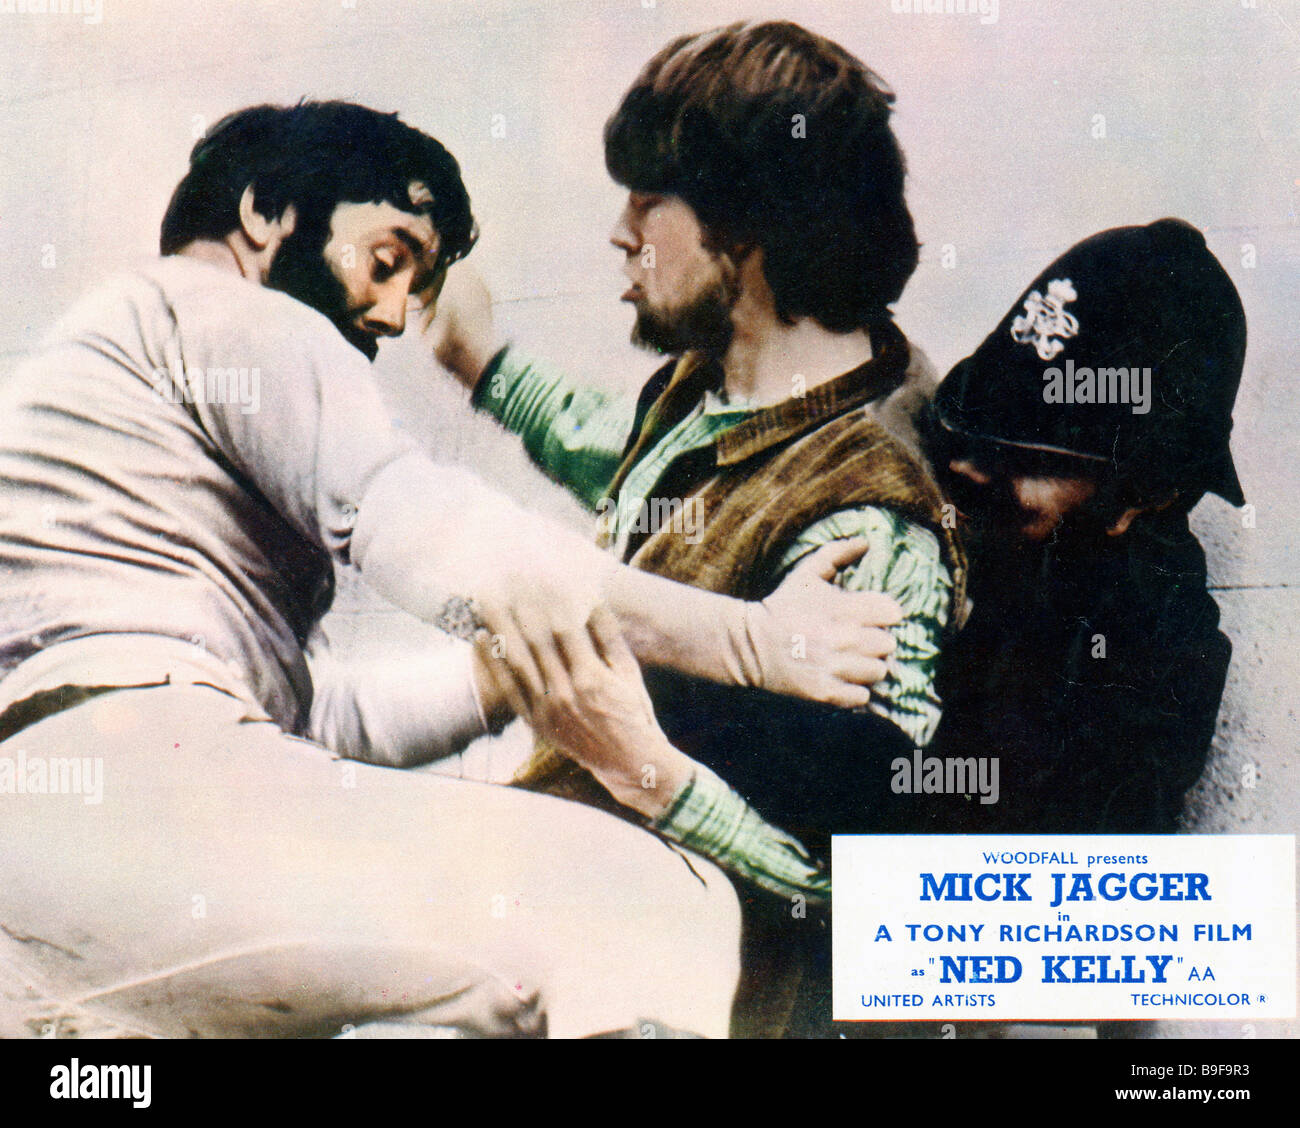 NED KELLY 1970 UA film with Mick Jagger - Stock Image